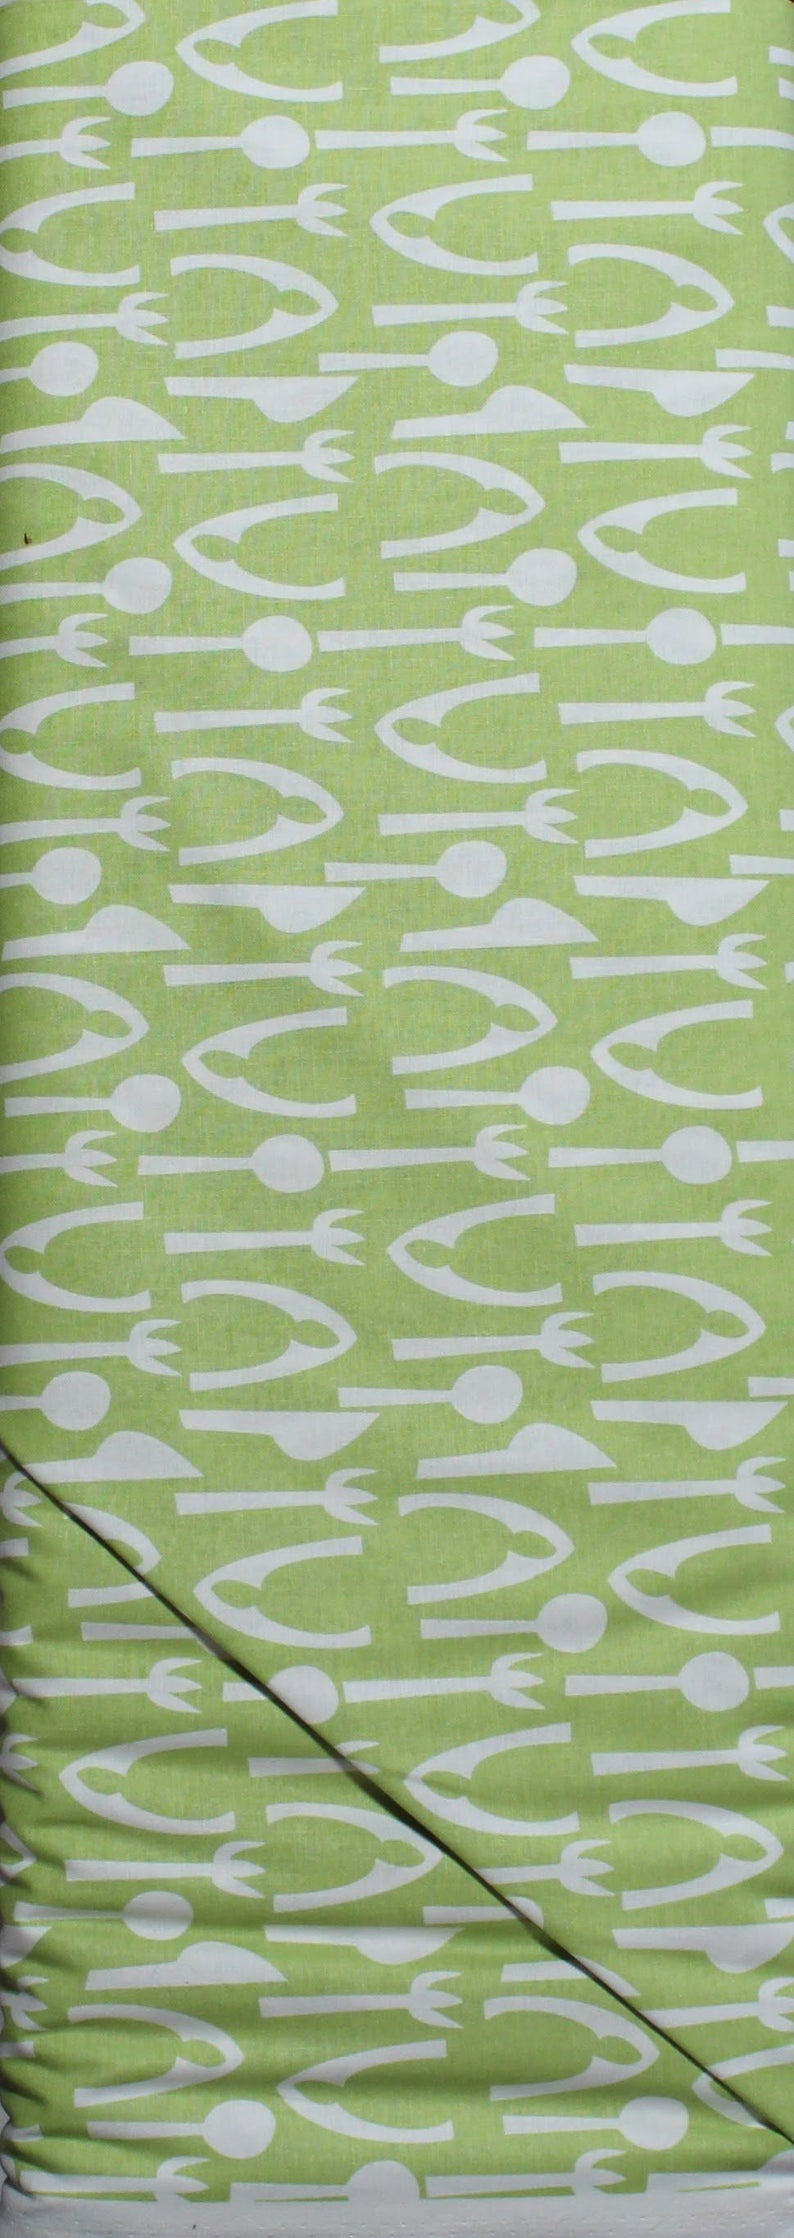 Blend Fabric by Maude Asbury: Crabtastic image 0